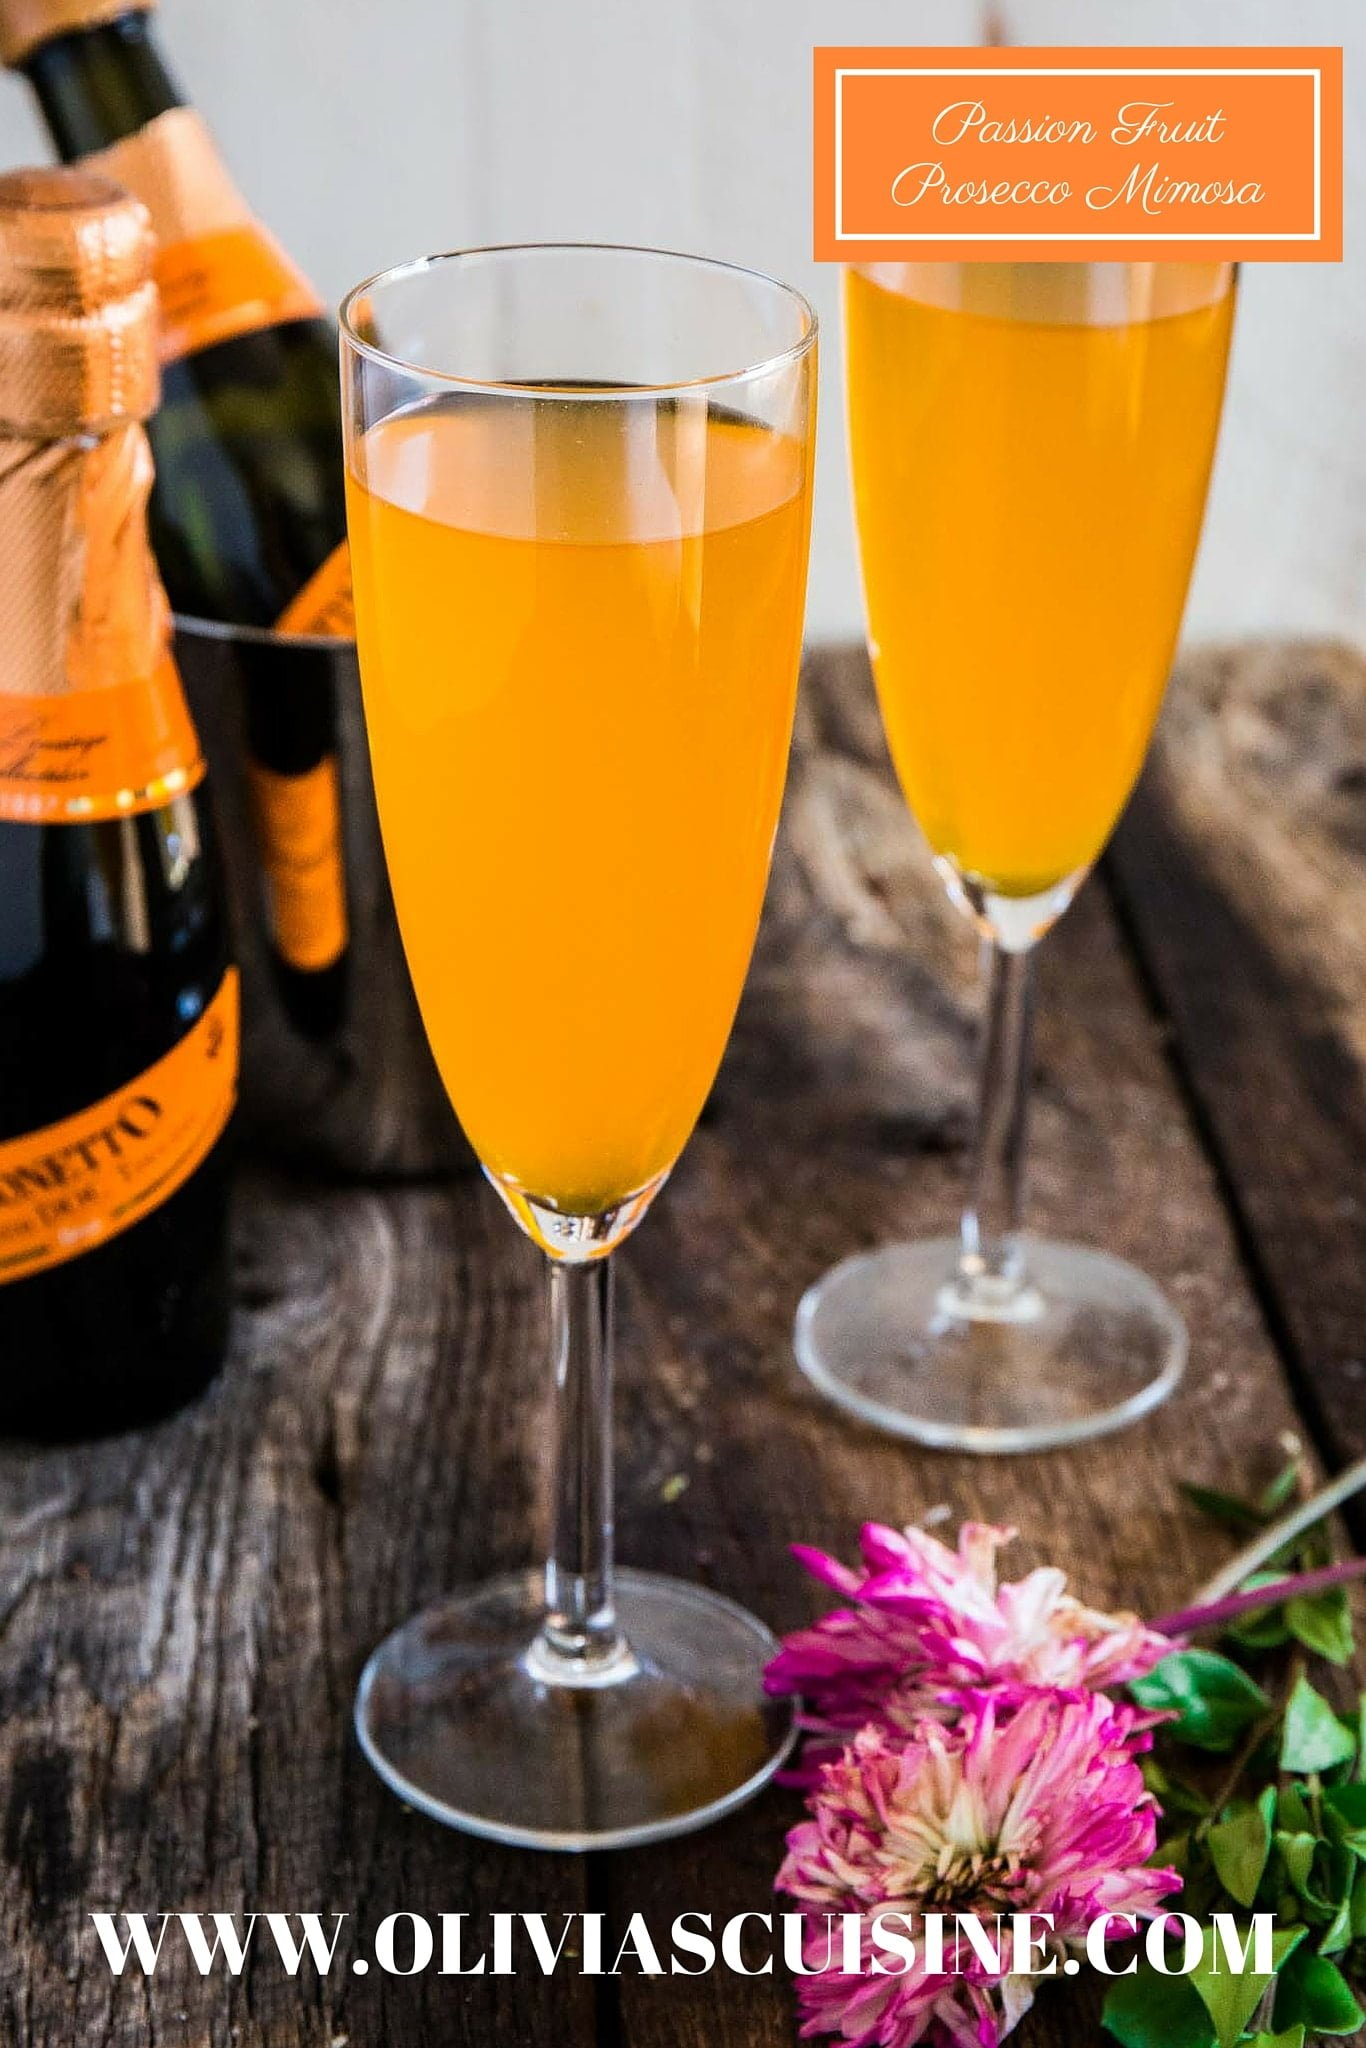 Passion Fruit Prosecco Mimosa | www.oliviascuisine.com | A refreshing and easy cocktail, made with only 2 ingredients: Passion Fruit juice and Mionetto Prosecco! MyMionetto (Msg 4 21+) AD